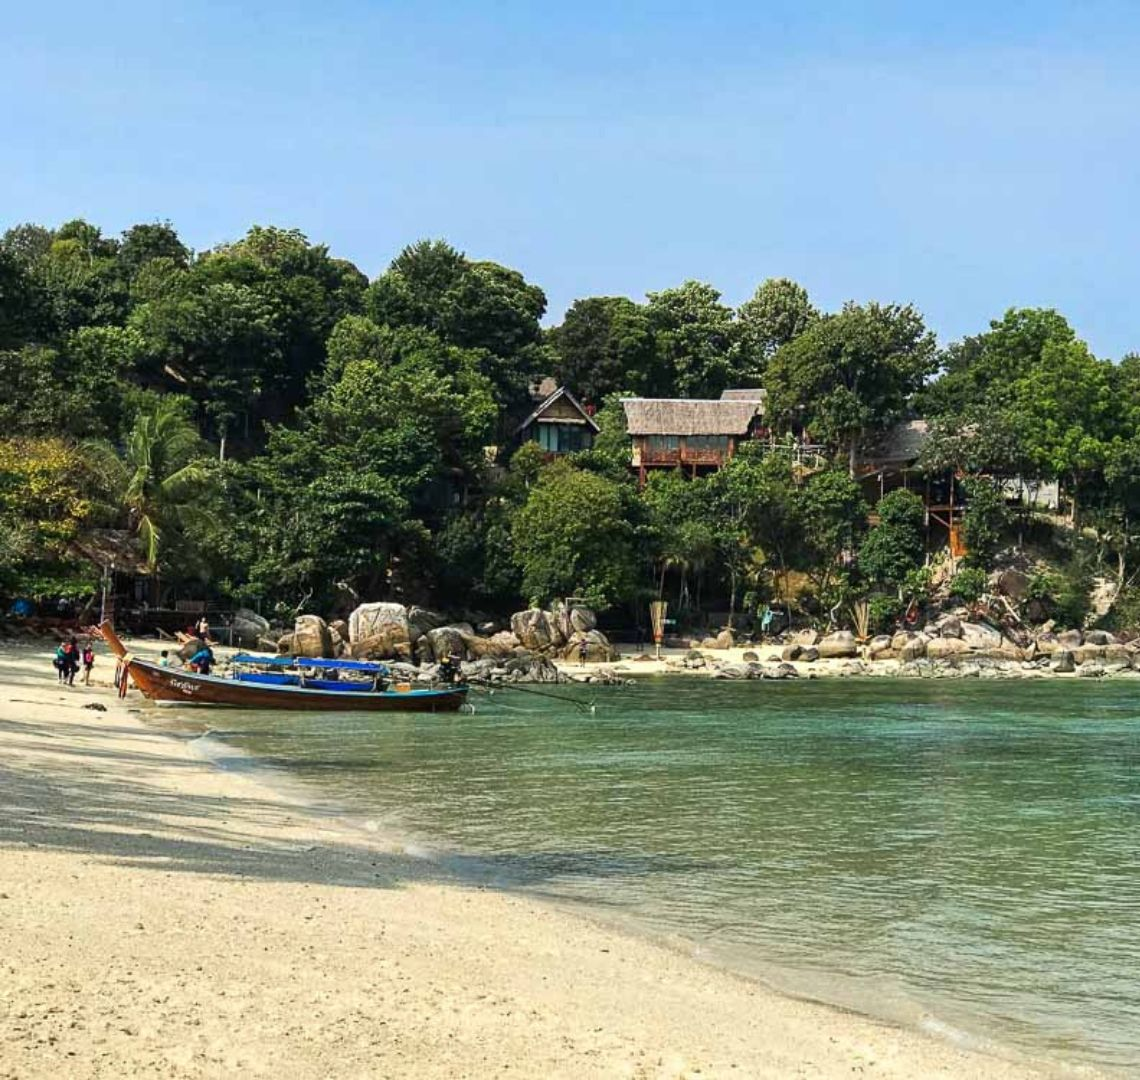 Best secret islands in Thailand with kids - the beach in Koh Lipe bends around to the left. There is a boat moored on the beach with some people on it and next to it. Behind it are a few rocks and trees. There is a hotel or guest house nestled in the trees slightly above the beach